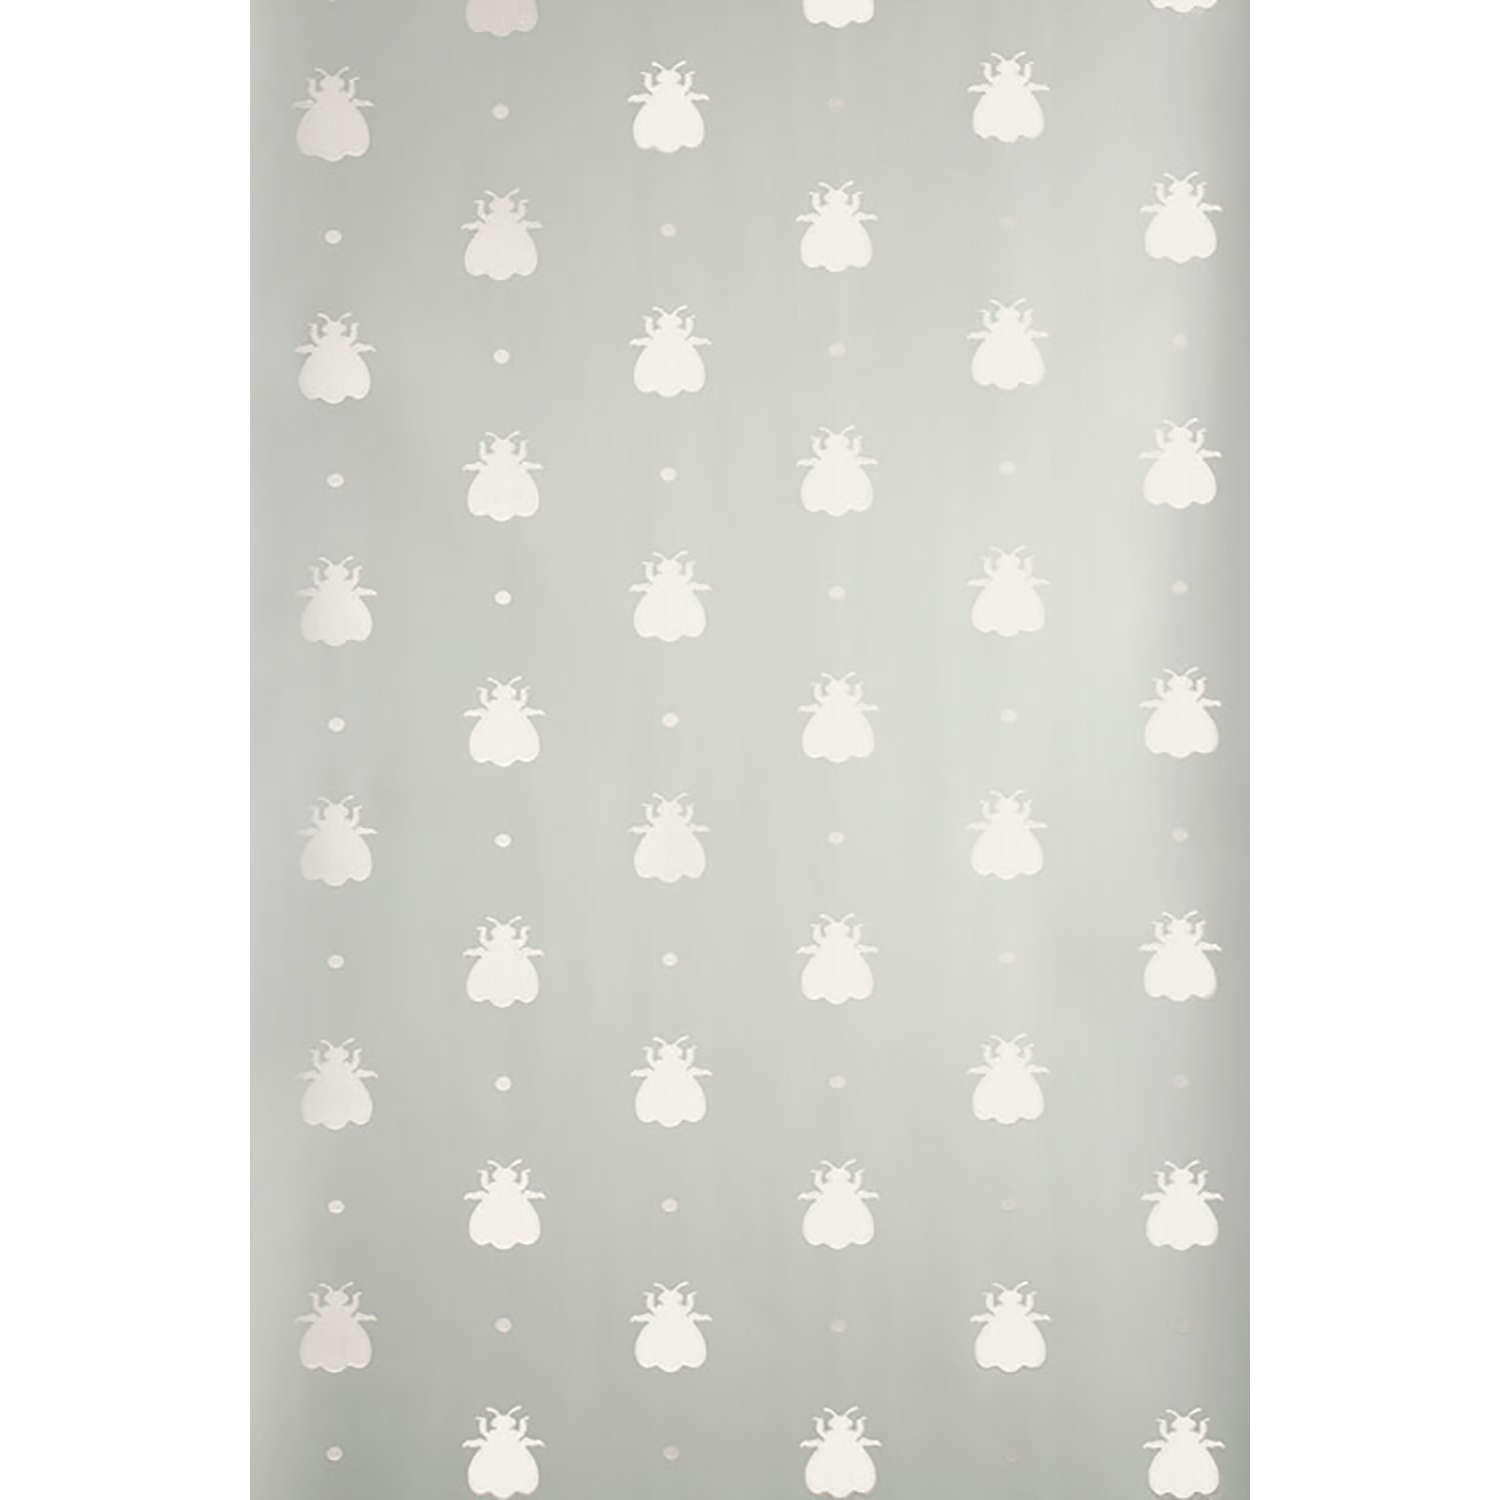 Image of Farrow And Ball Bumble Bee Wallpaper 5-84, Silver